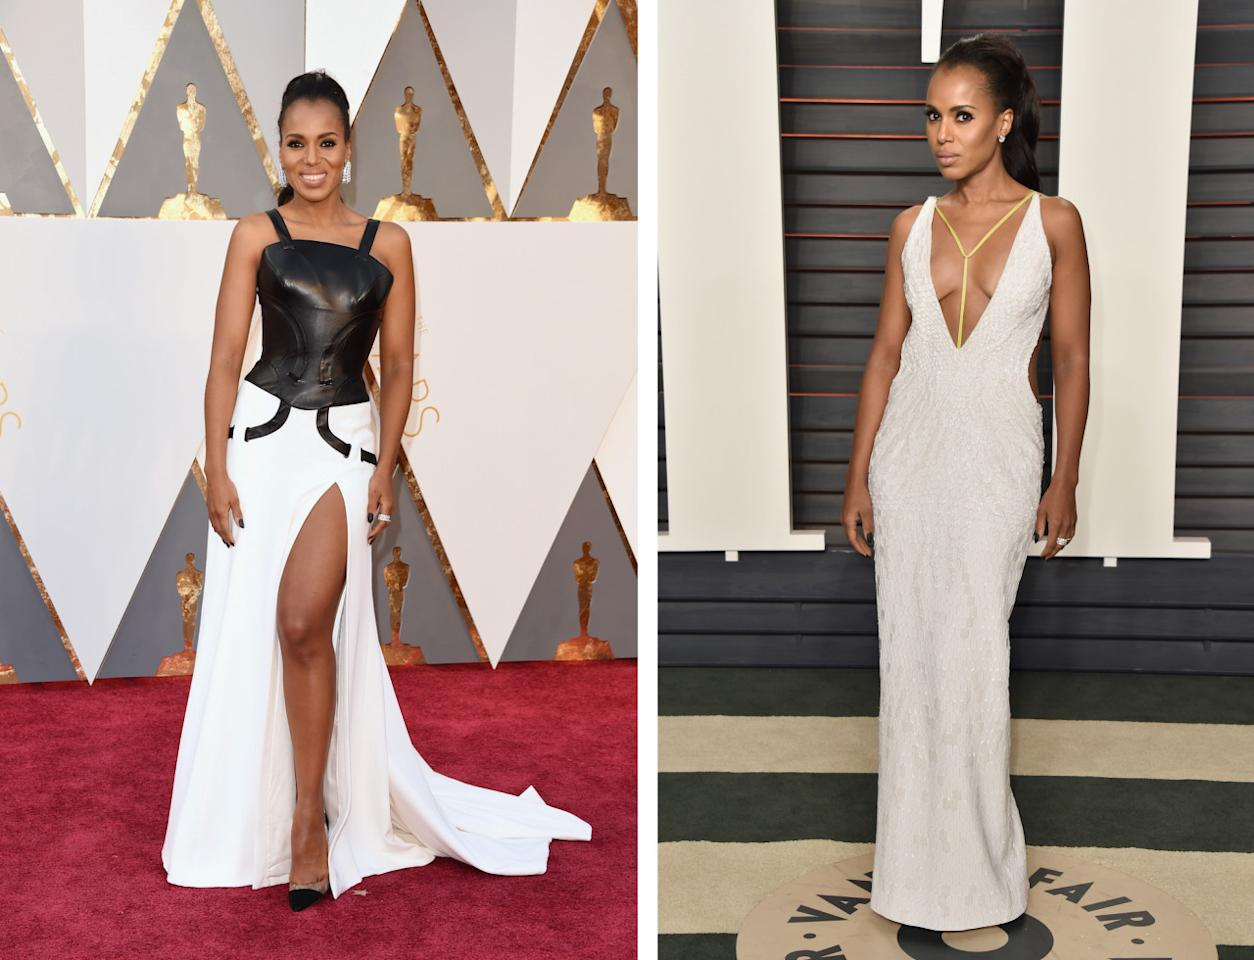 <p>At the Academy Awards, Kerry Washington was giving off major yin and yang vibes with her black and white Atelier Versace. But for the afterparty, her vibe was totally different in a white dress, also by the Italian brand, with yellow string details. <i>(Photos: Getty Images)</i></p>